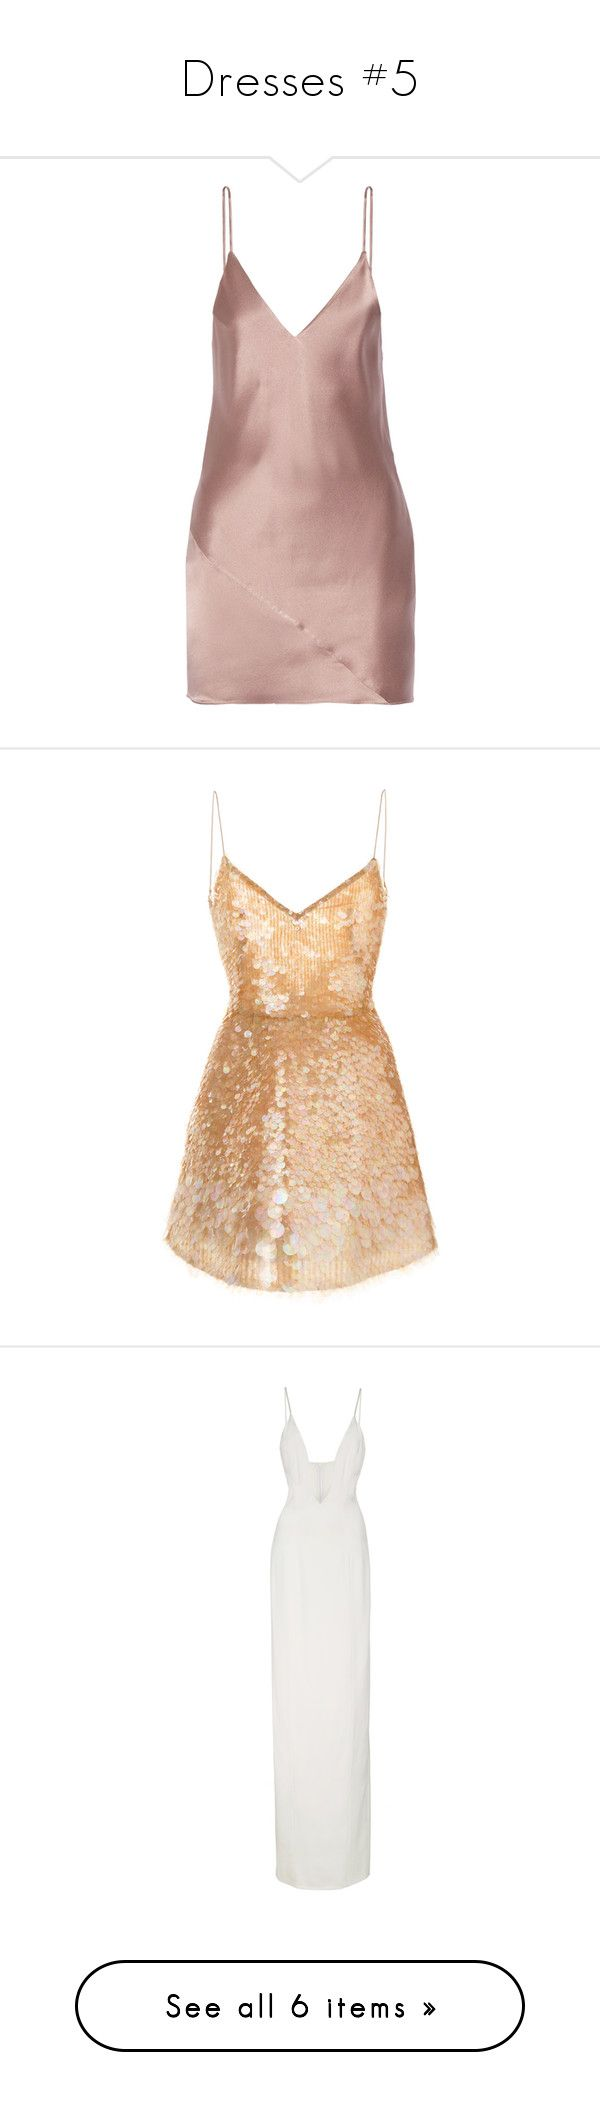 """Dresses #5"" by asoc10 ❤ liked on Polyvore featuring intimates, dresses, vestidos, fleur du mal, lingerie slip, slip lingerie, fleur du mal lingerie, beige silk dress, sequin embellished dress and beige sequin dress"